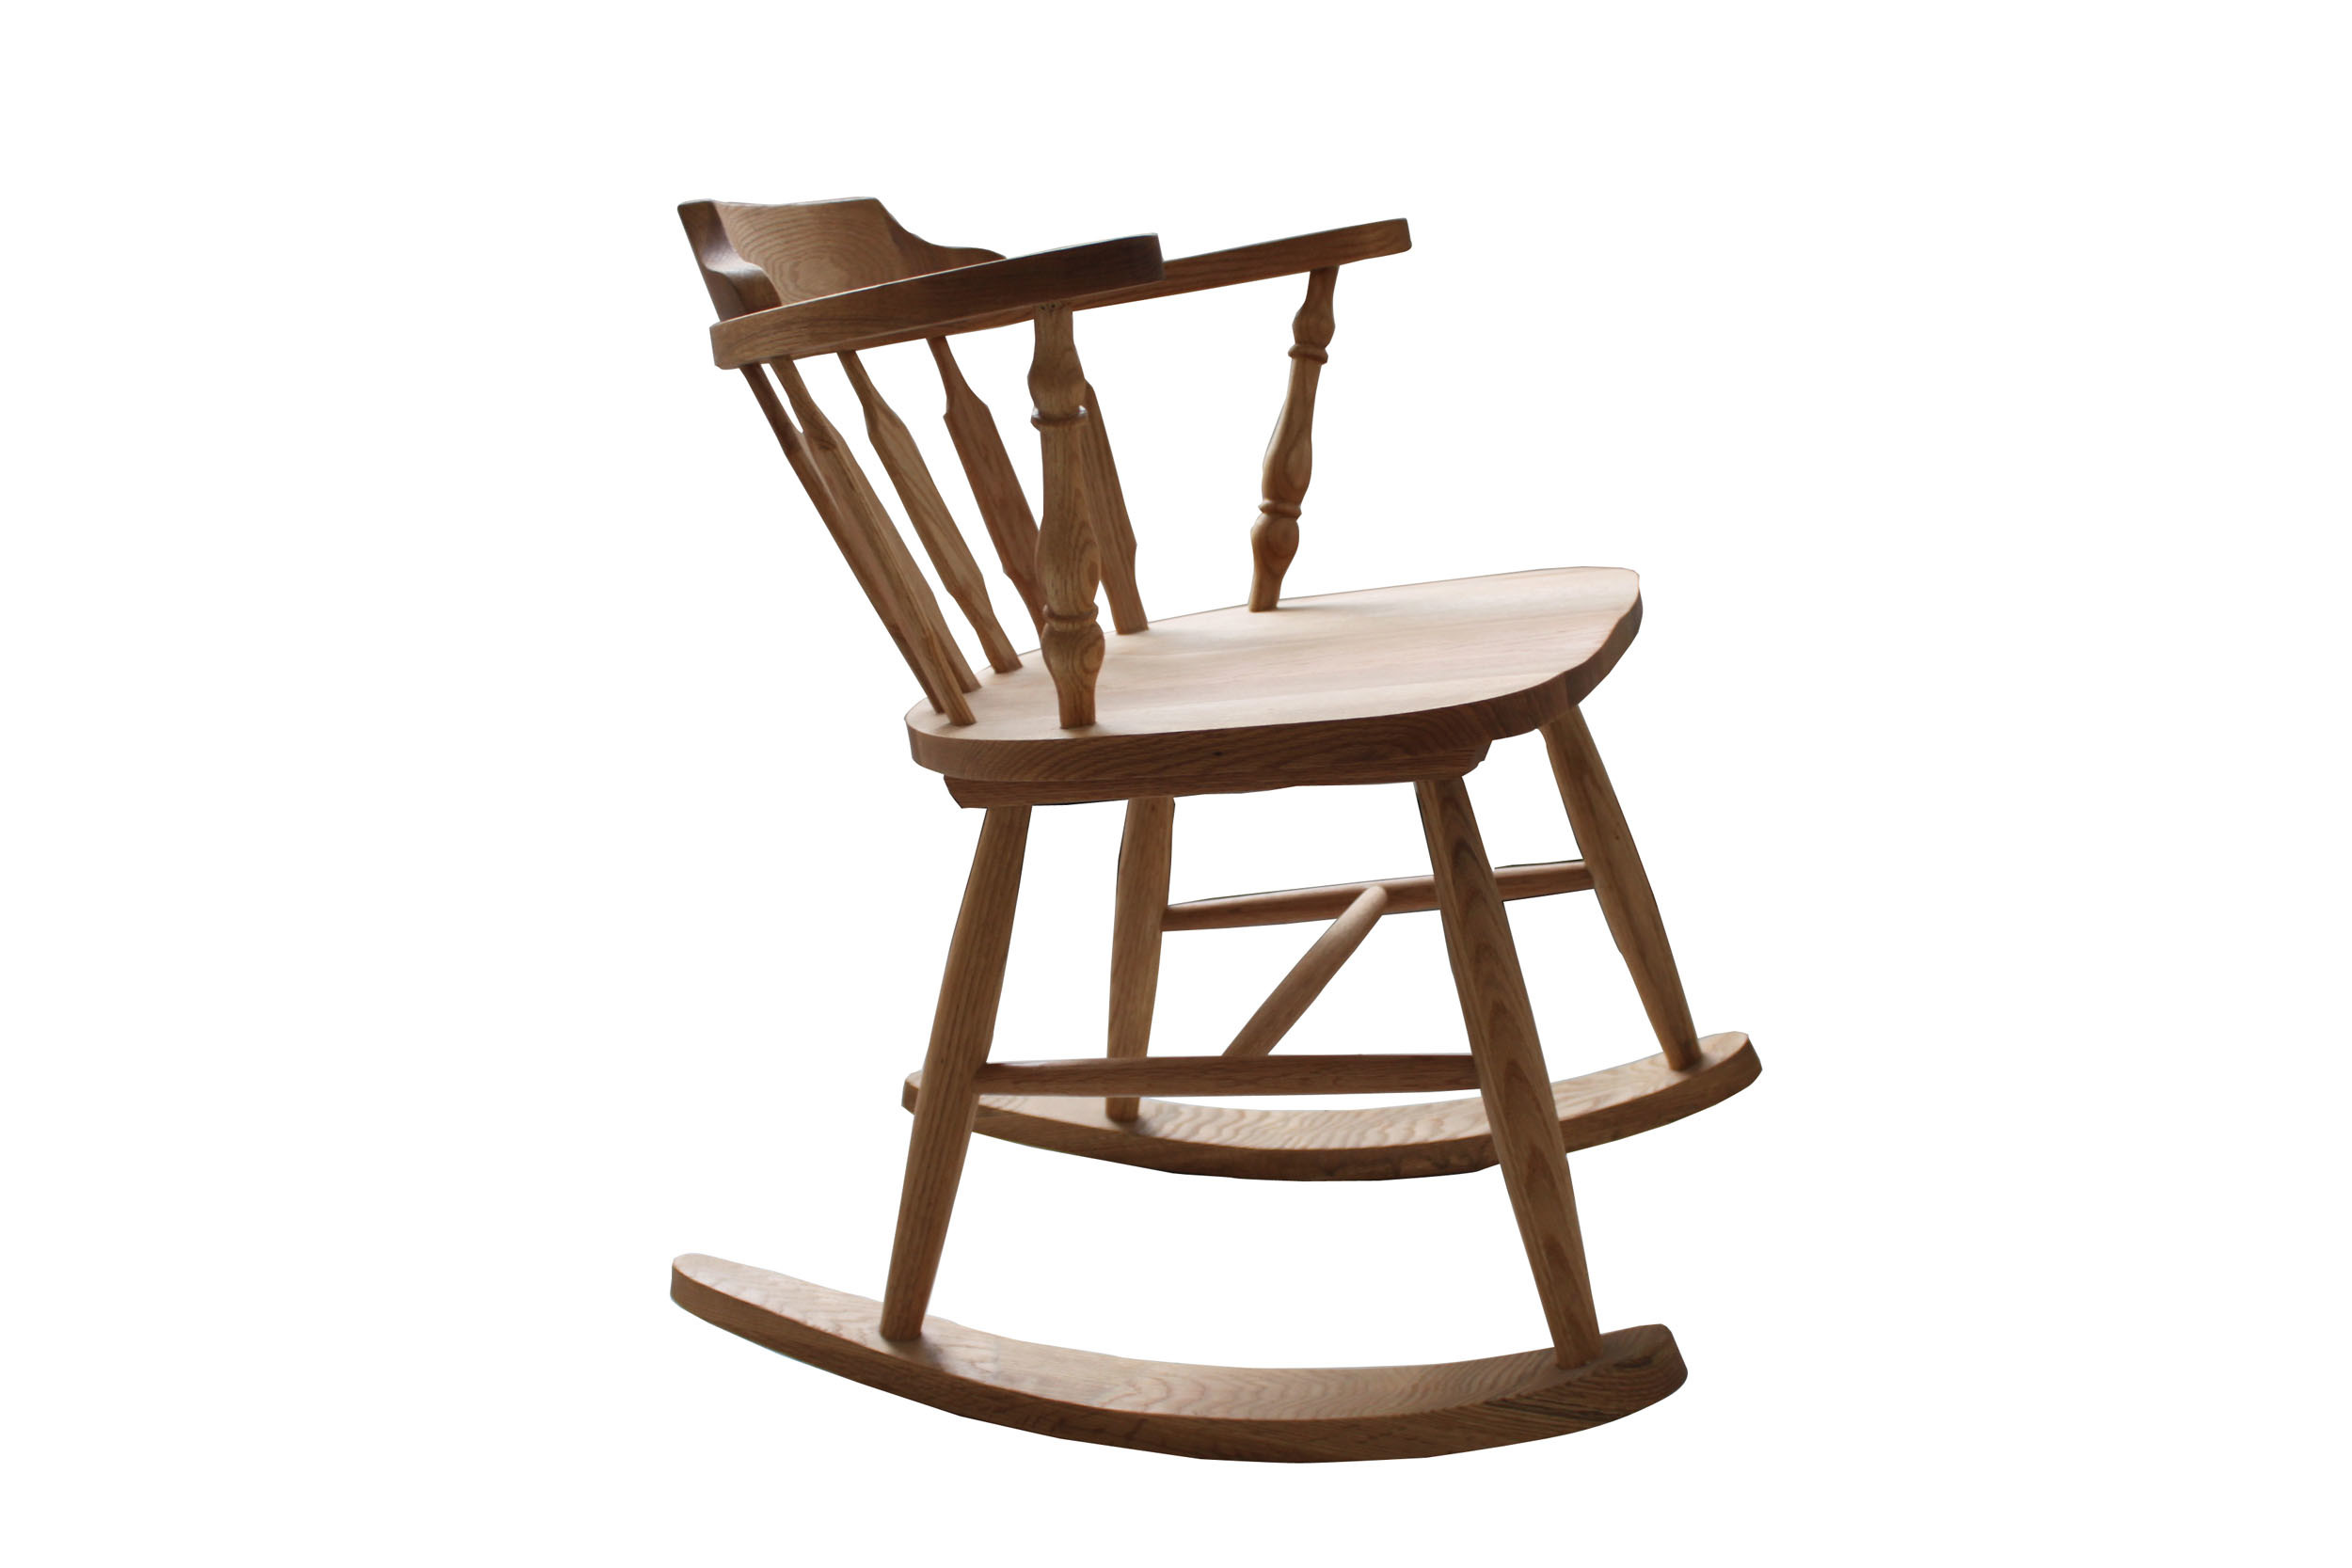 Wood project ideas woodworking basic chair